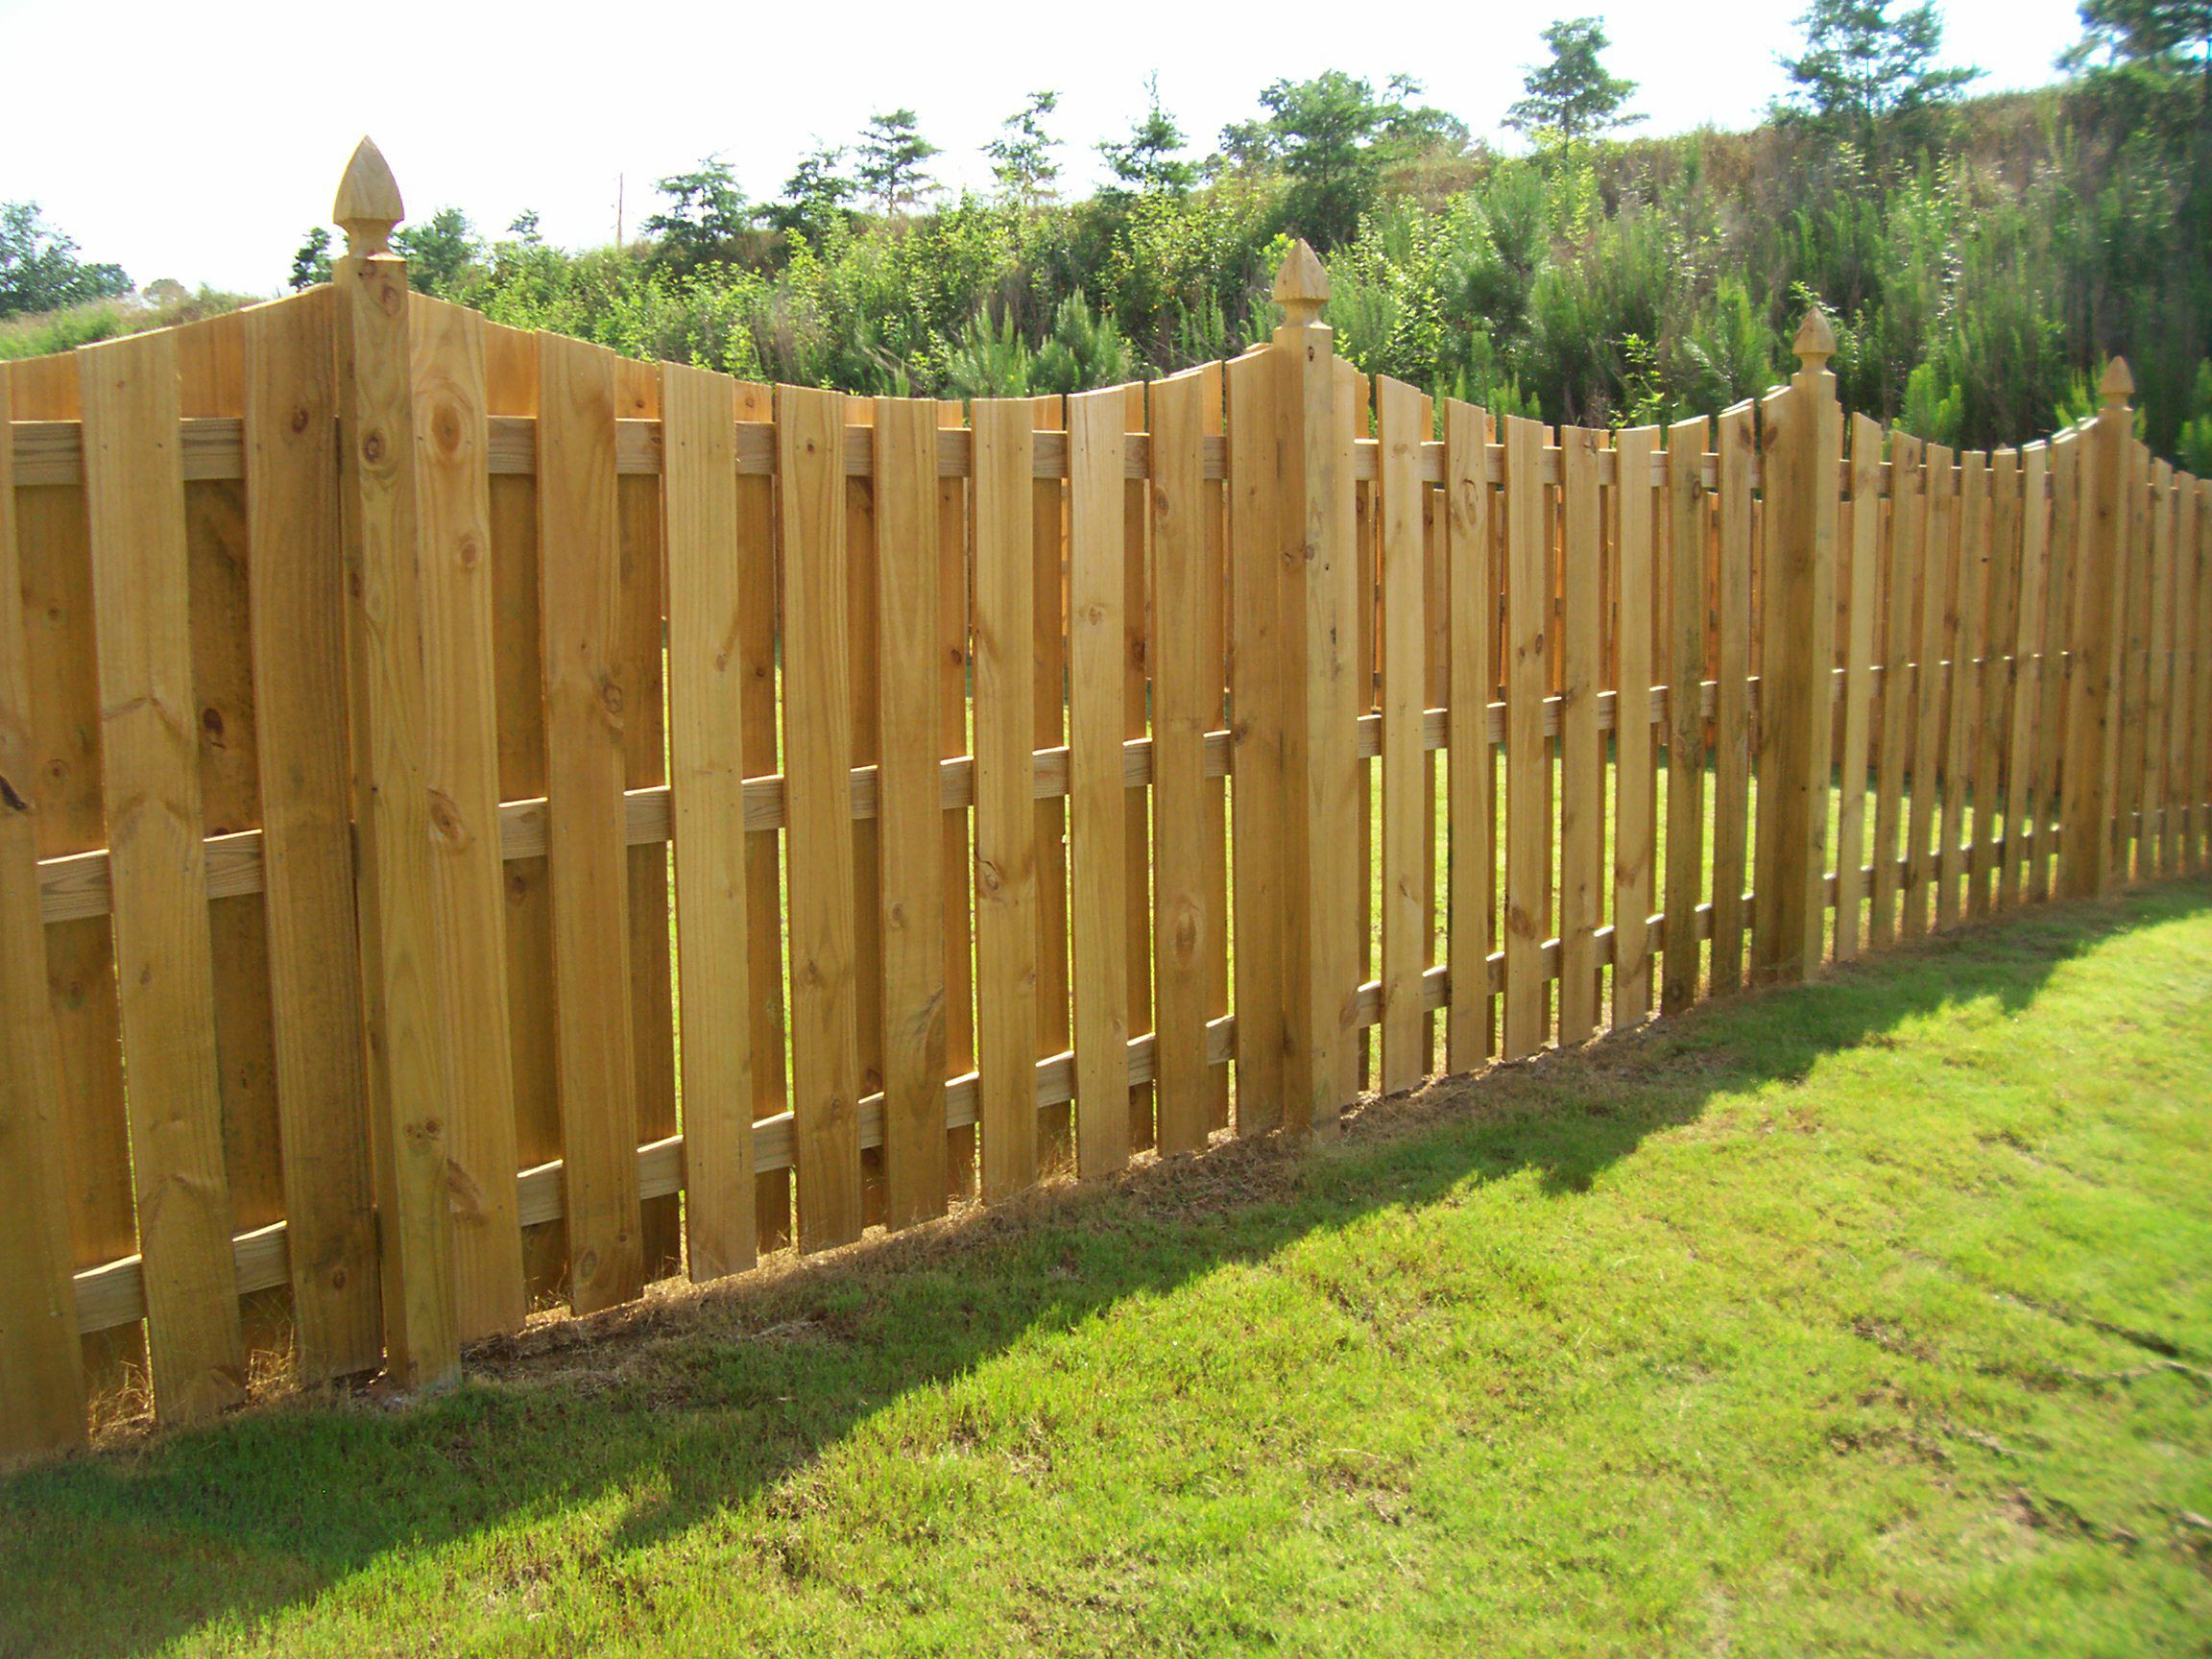 Fence Design Ideas fence designs by shieldguard security doors gates exquisite 25 Best Ideas About Wood Fences On Pinterest Backyard Fences Cedar Fence And Wooden Fence